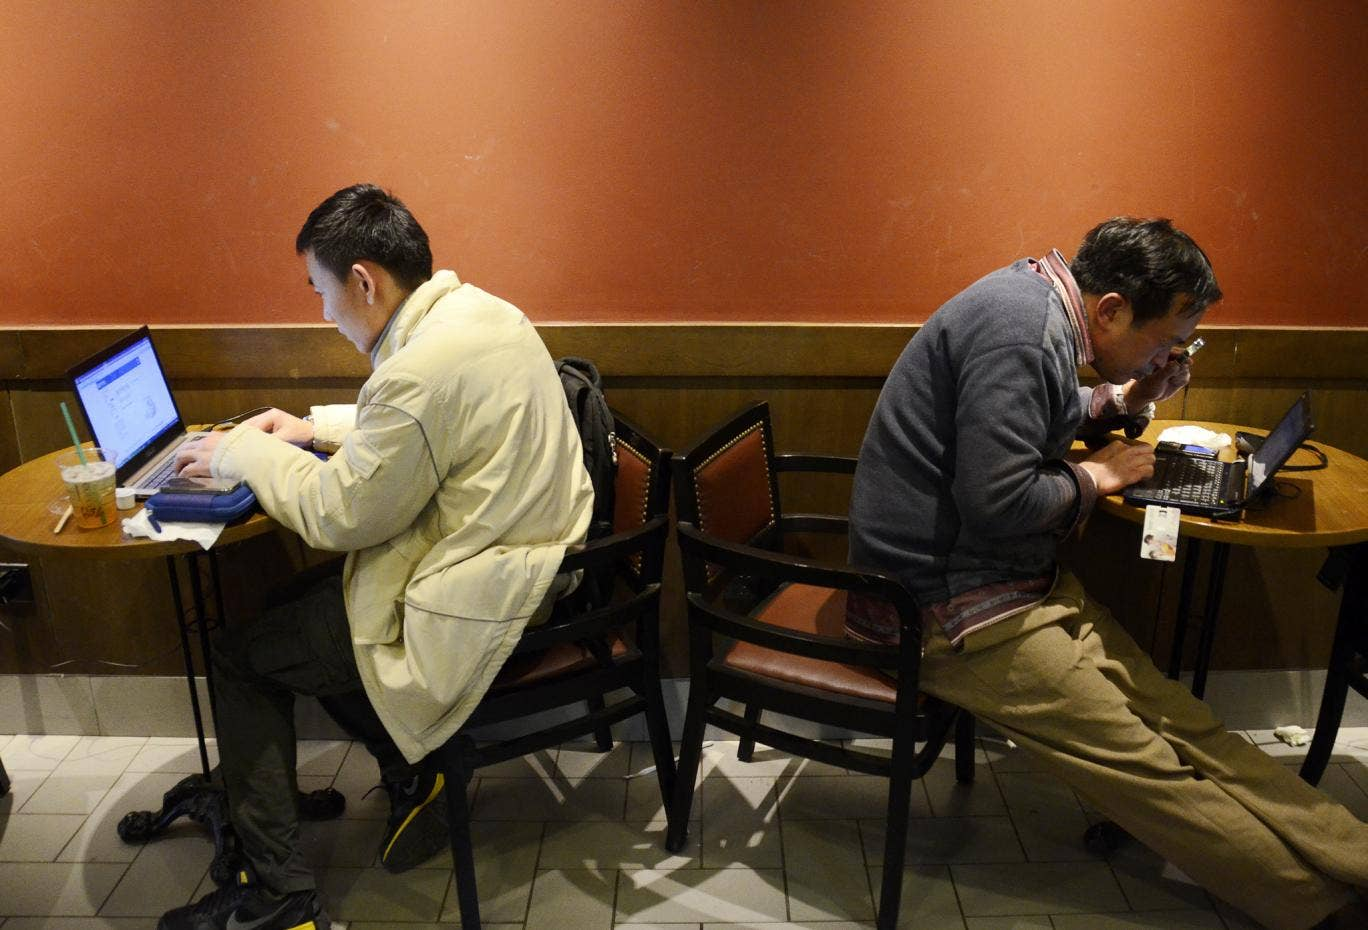 Could this spell the end for frustratingly slow internet connections in coffee shops, libraries and airports?